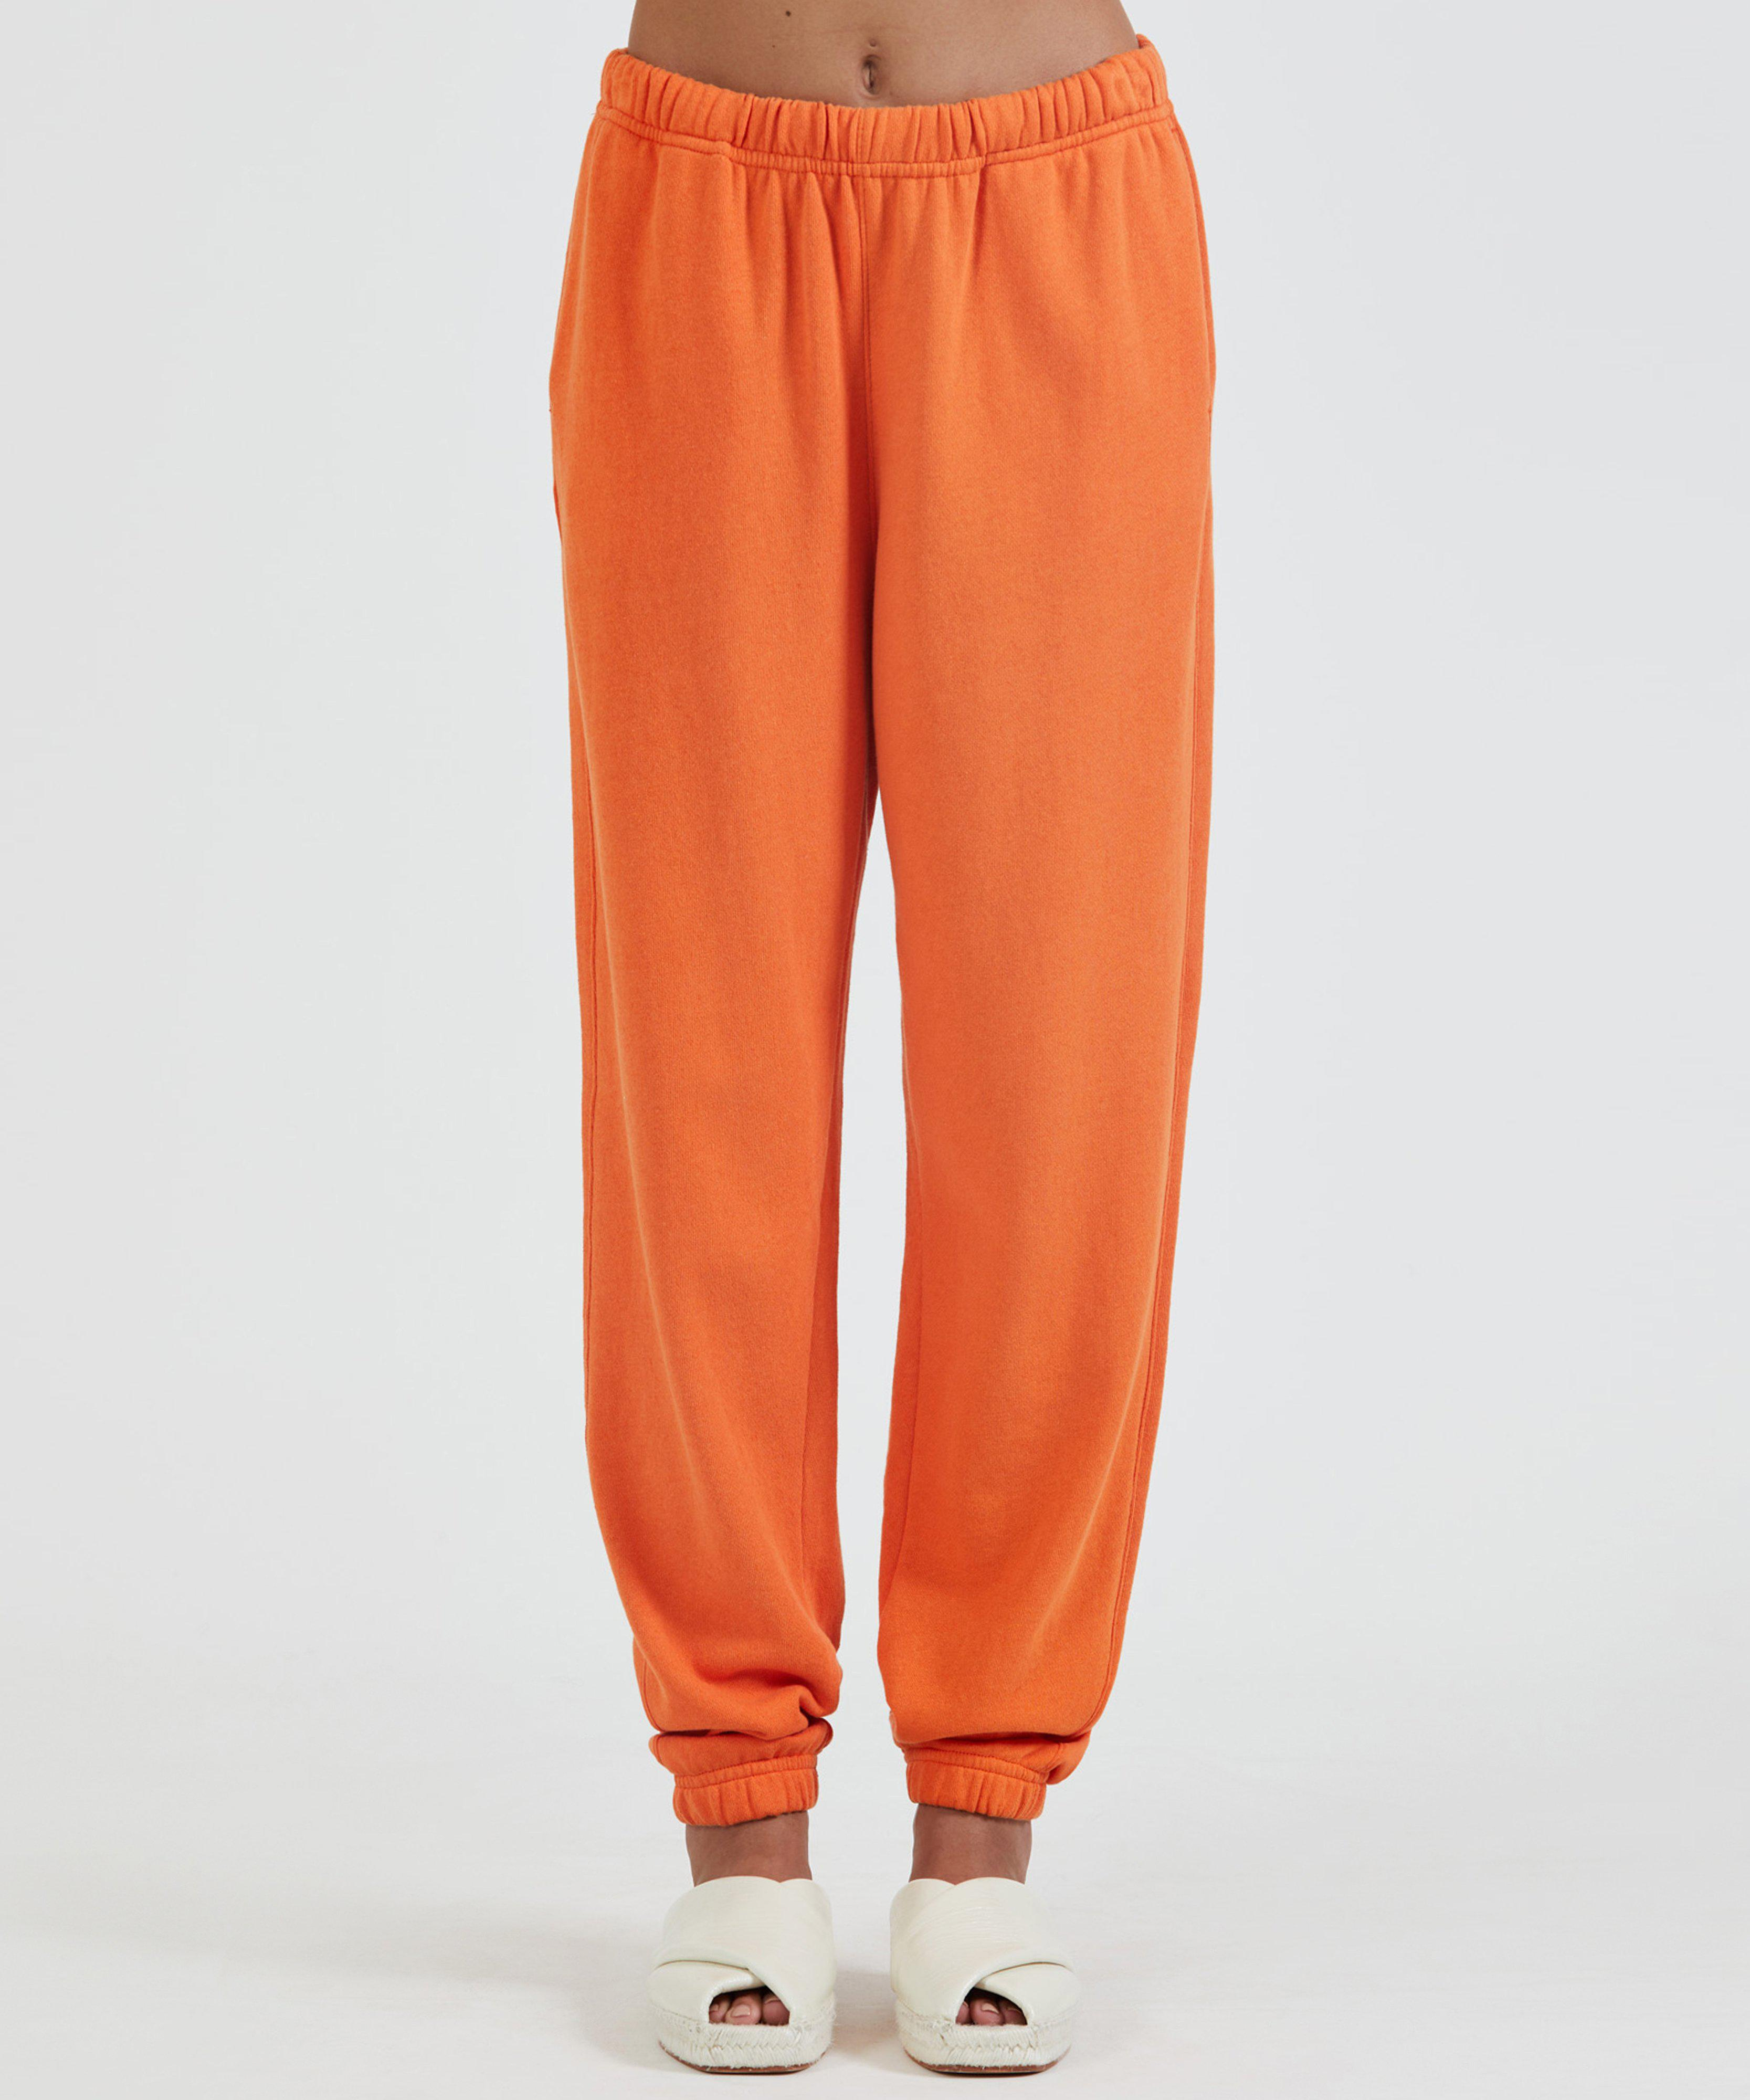 French Terry Pull-On Pant - Clementine